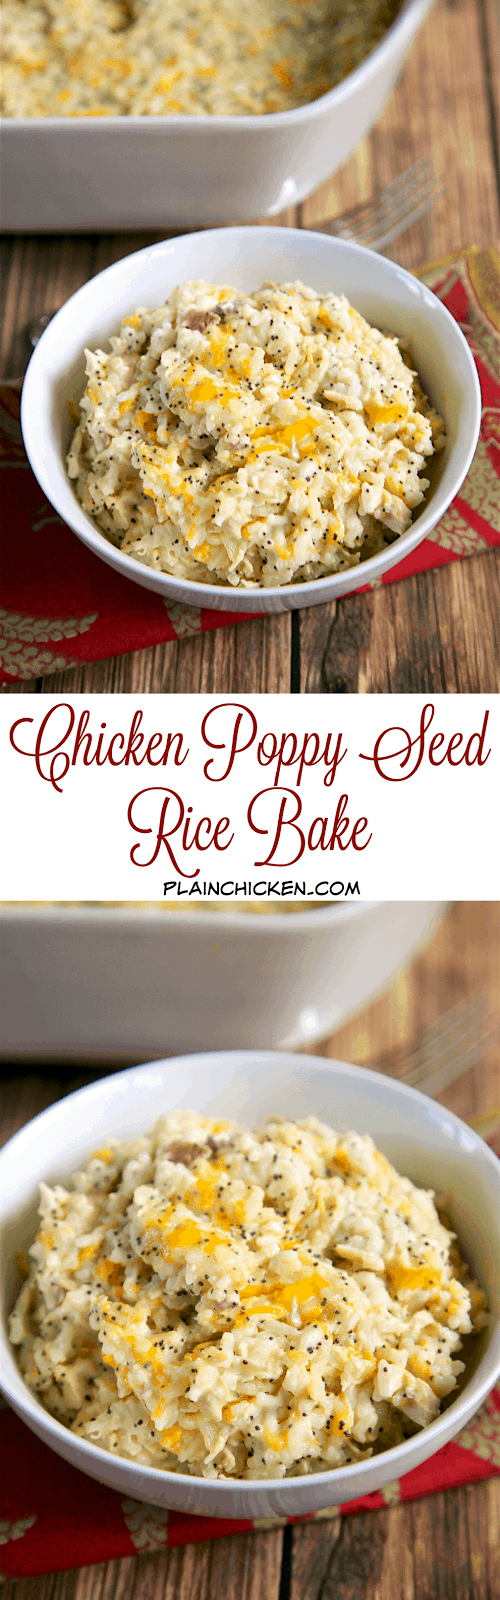 Chicken Poppy Seed Rice Bake - chicken, cheddar, sour cream, chicken soup, poppy seeds and rice - quick and easy weeknight casserole! Use rotisserie chicken and this comes together in 5 minutes! SO good! On the table in under 30 minutes! We make this at least once a week!!